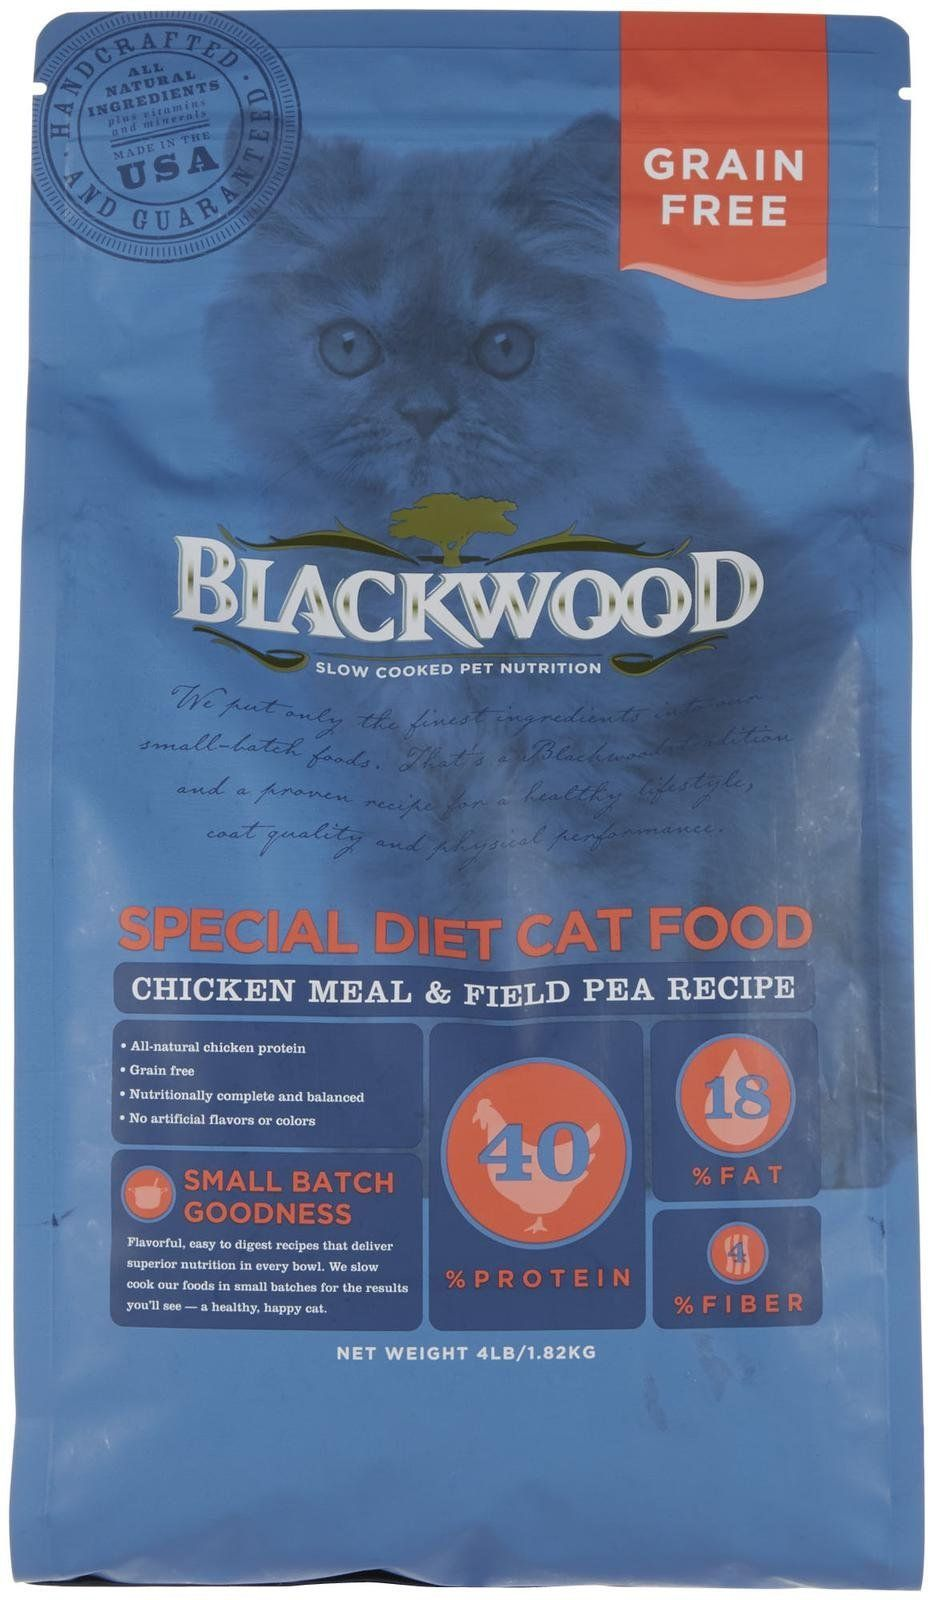 Blackwood pet food 075492885060 chicken meal and field pea